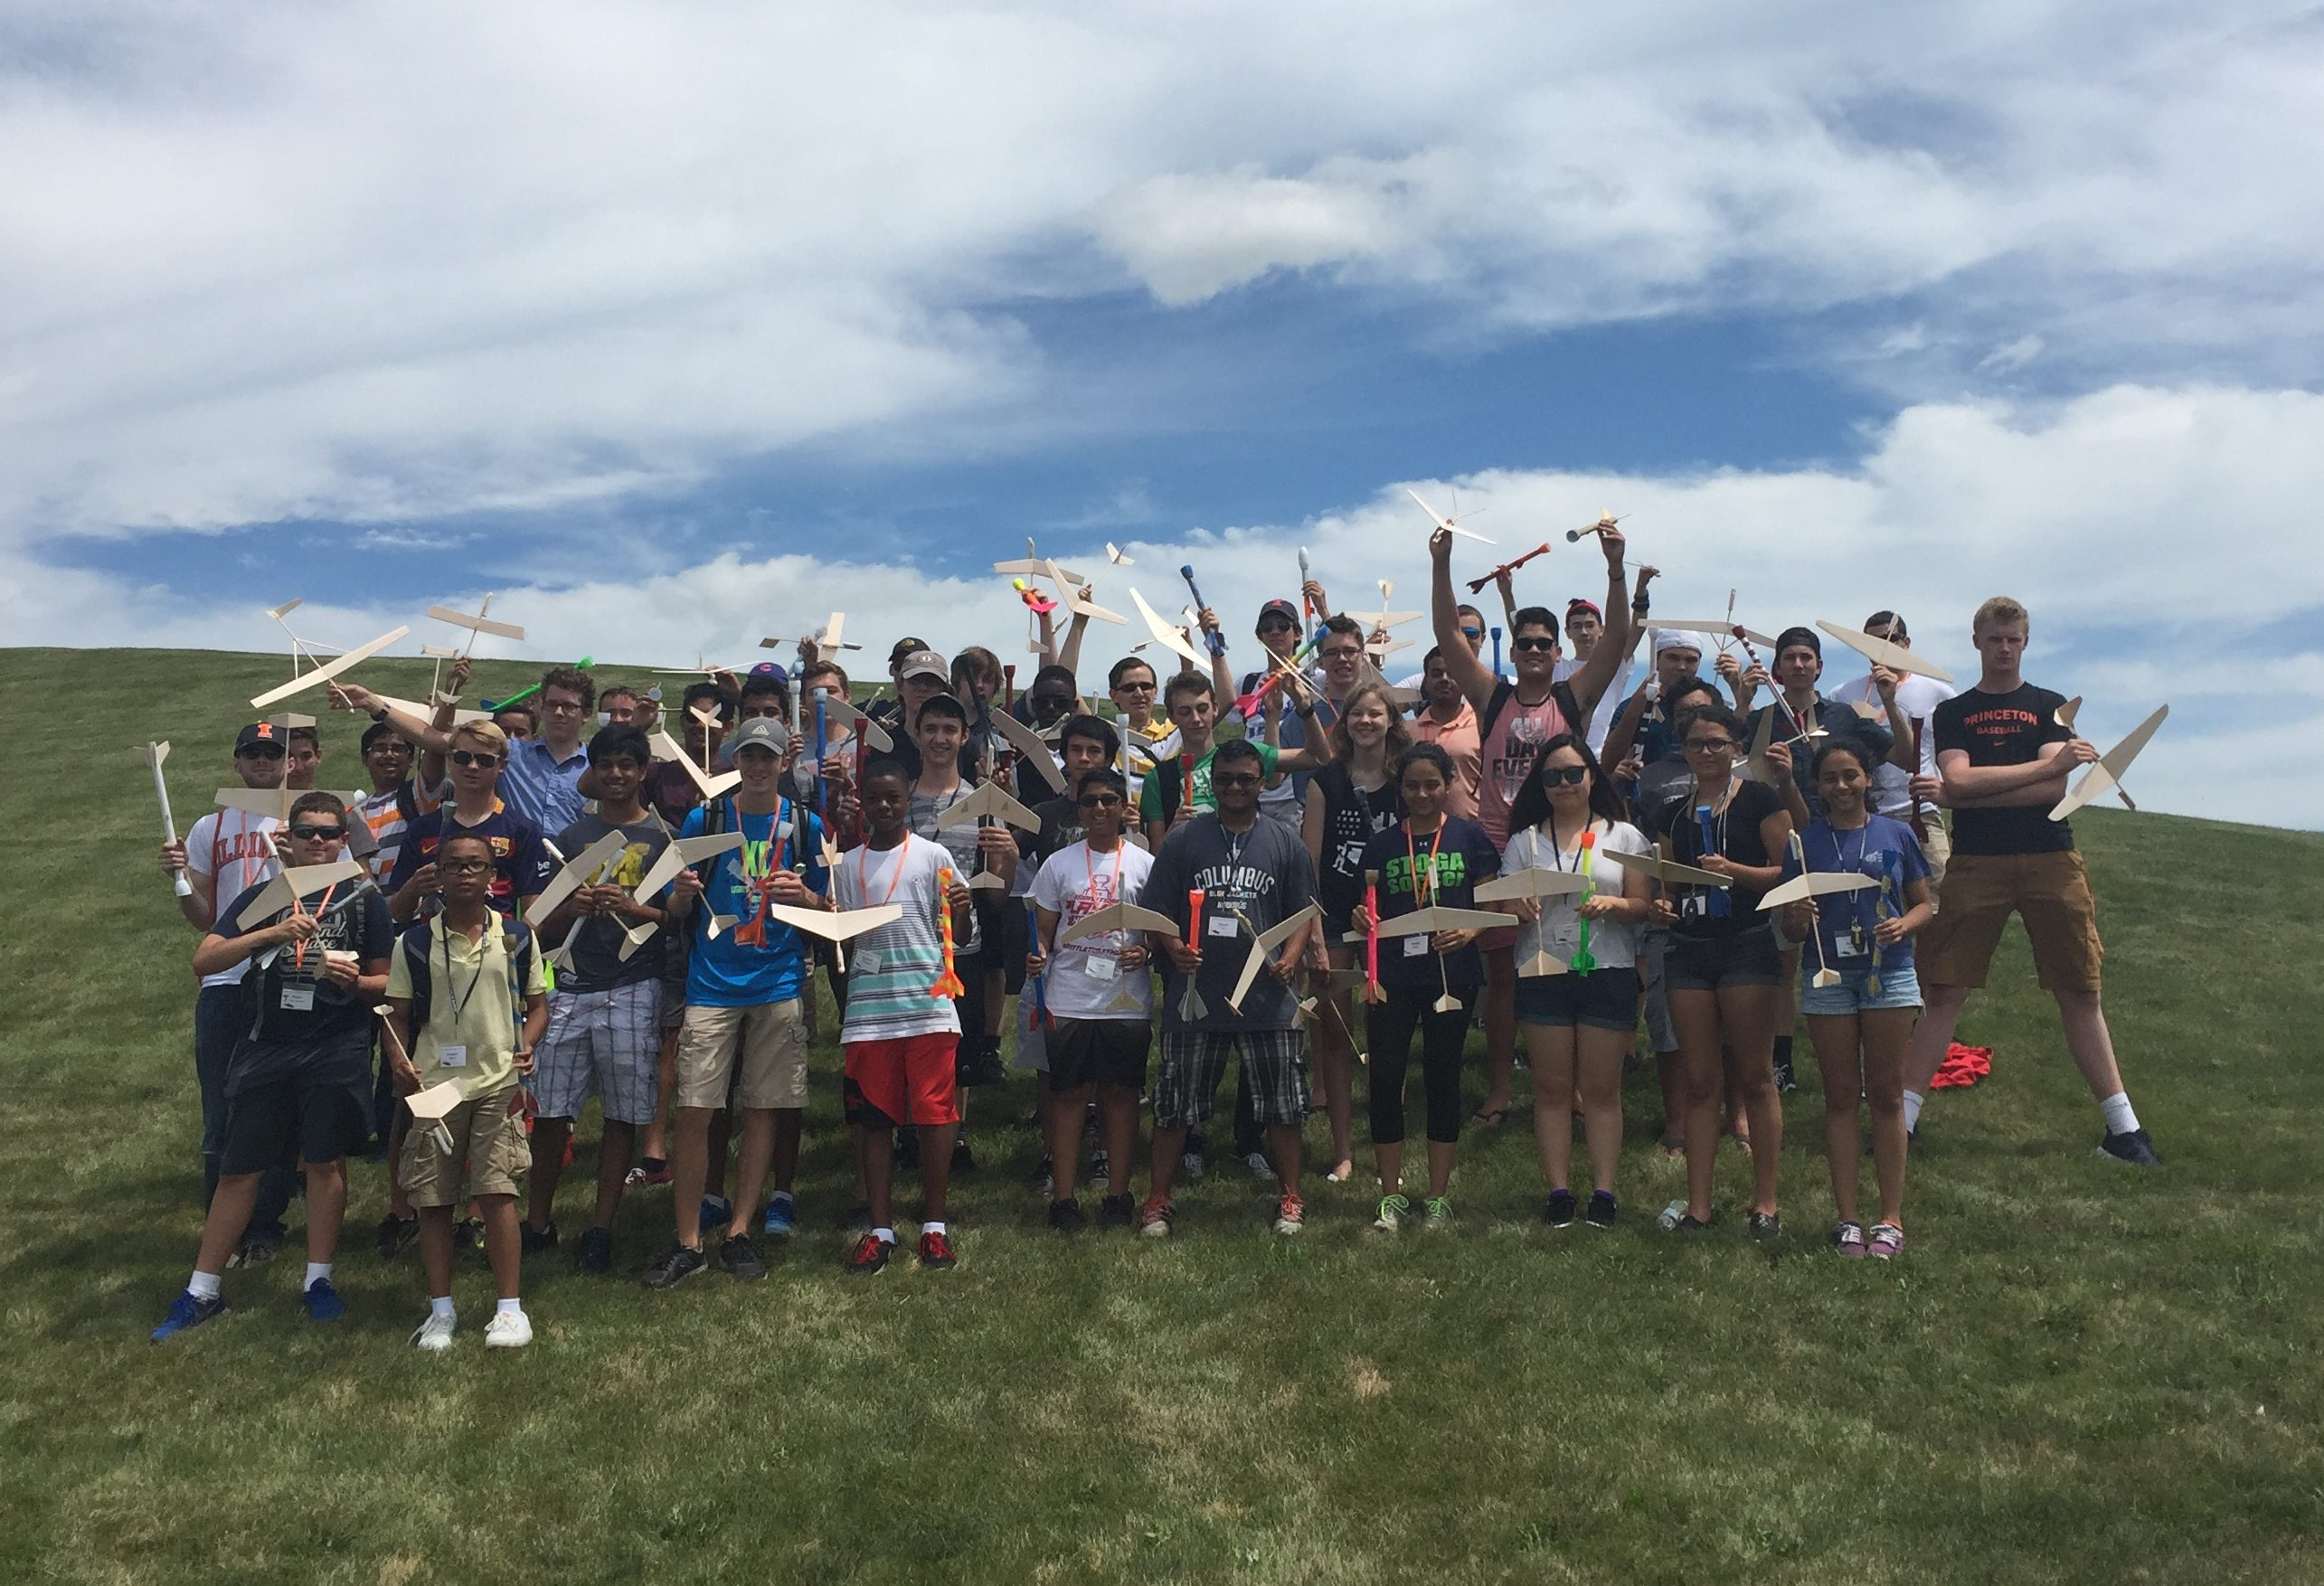 Students with model rockets and gliders